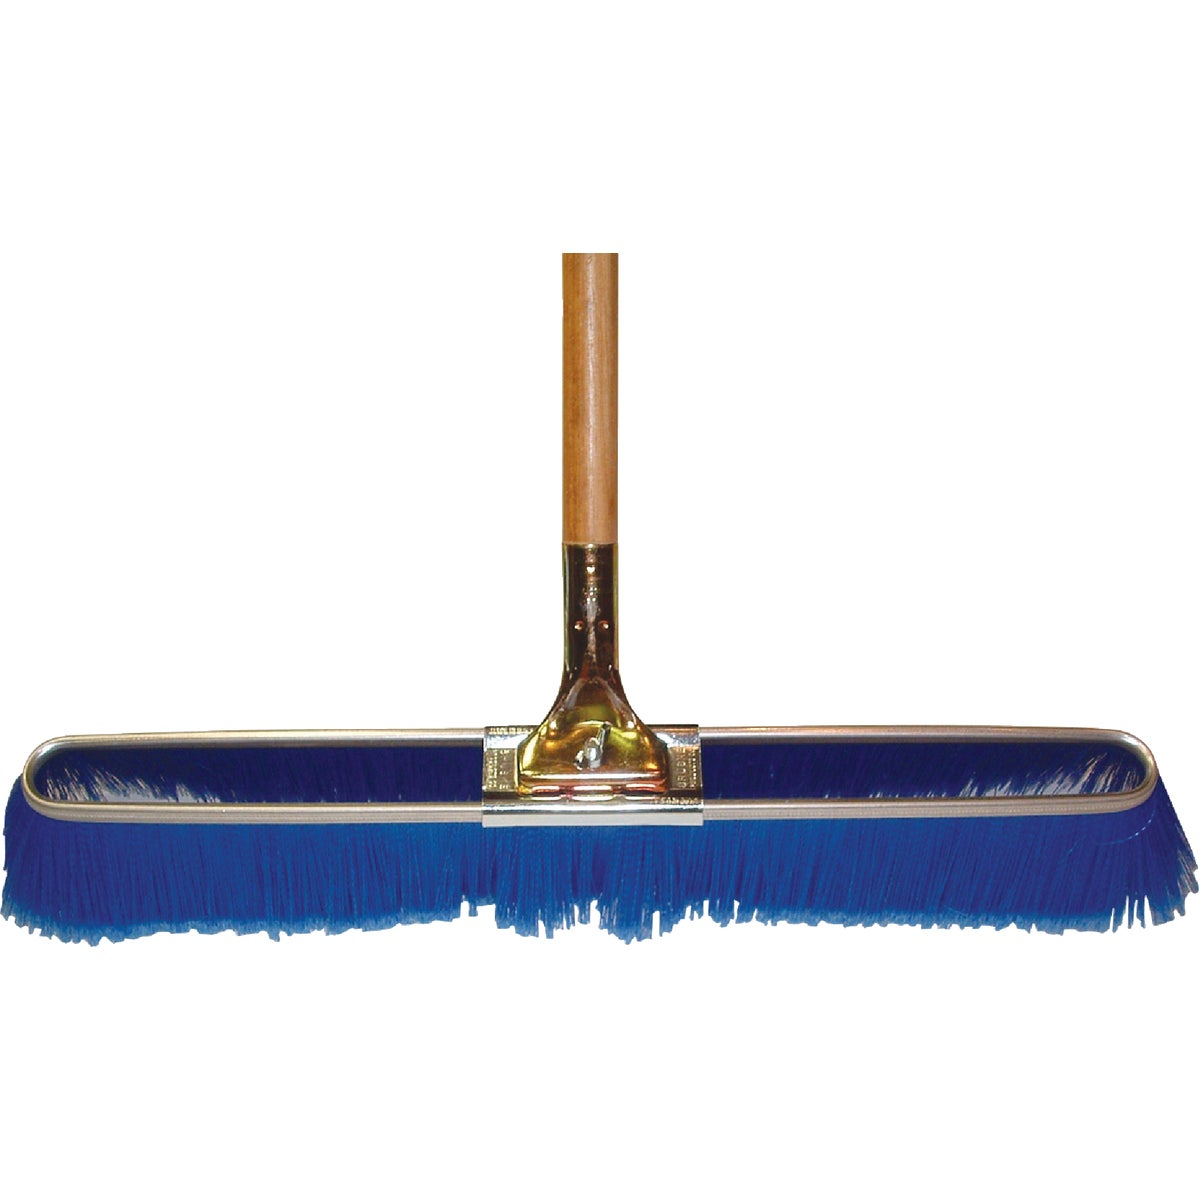 "23"" ALL PURPOSE BROOM - 2134-CW-4 by Bruske Products"